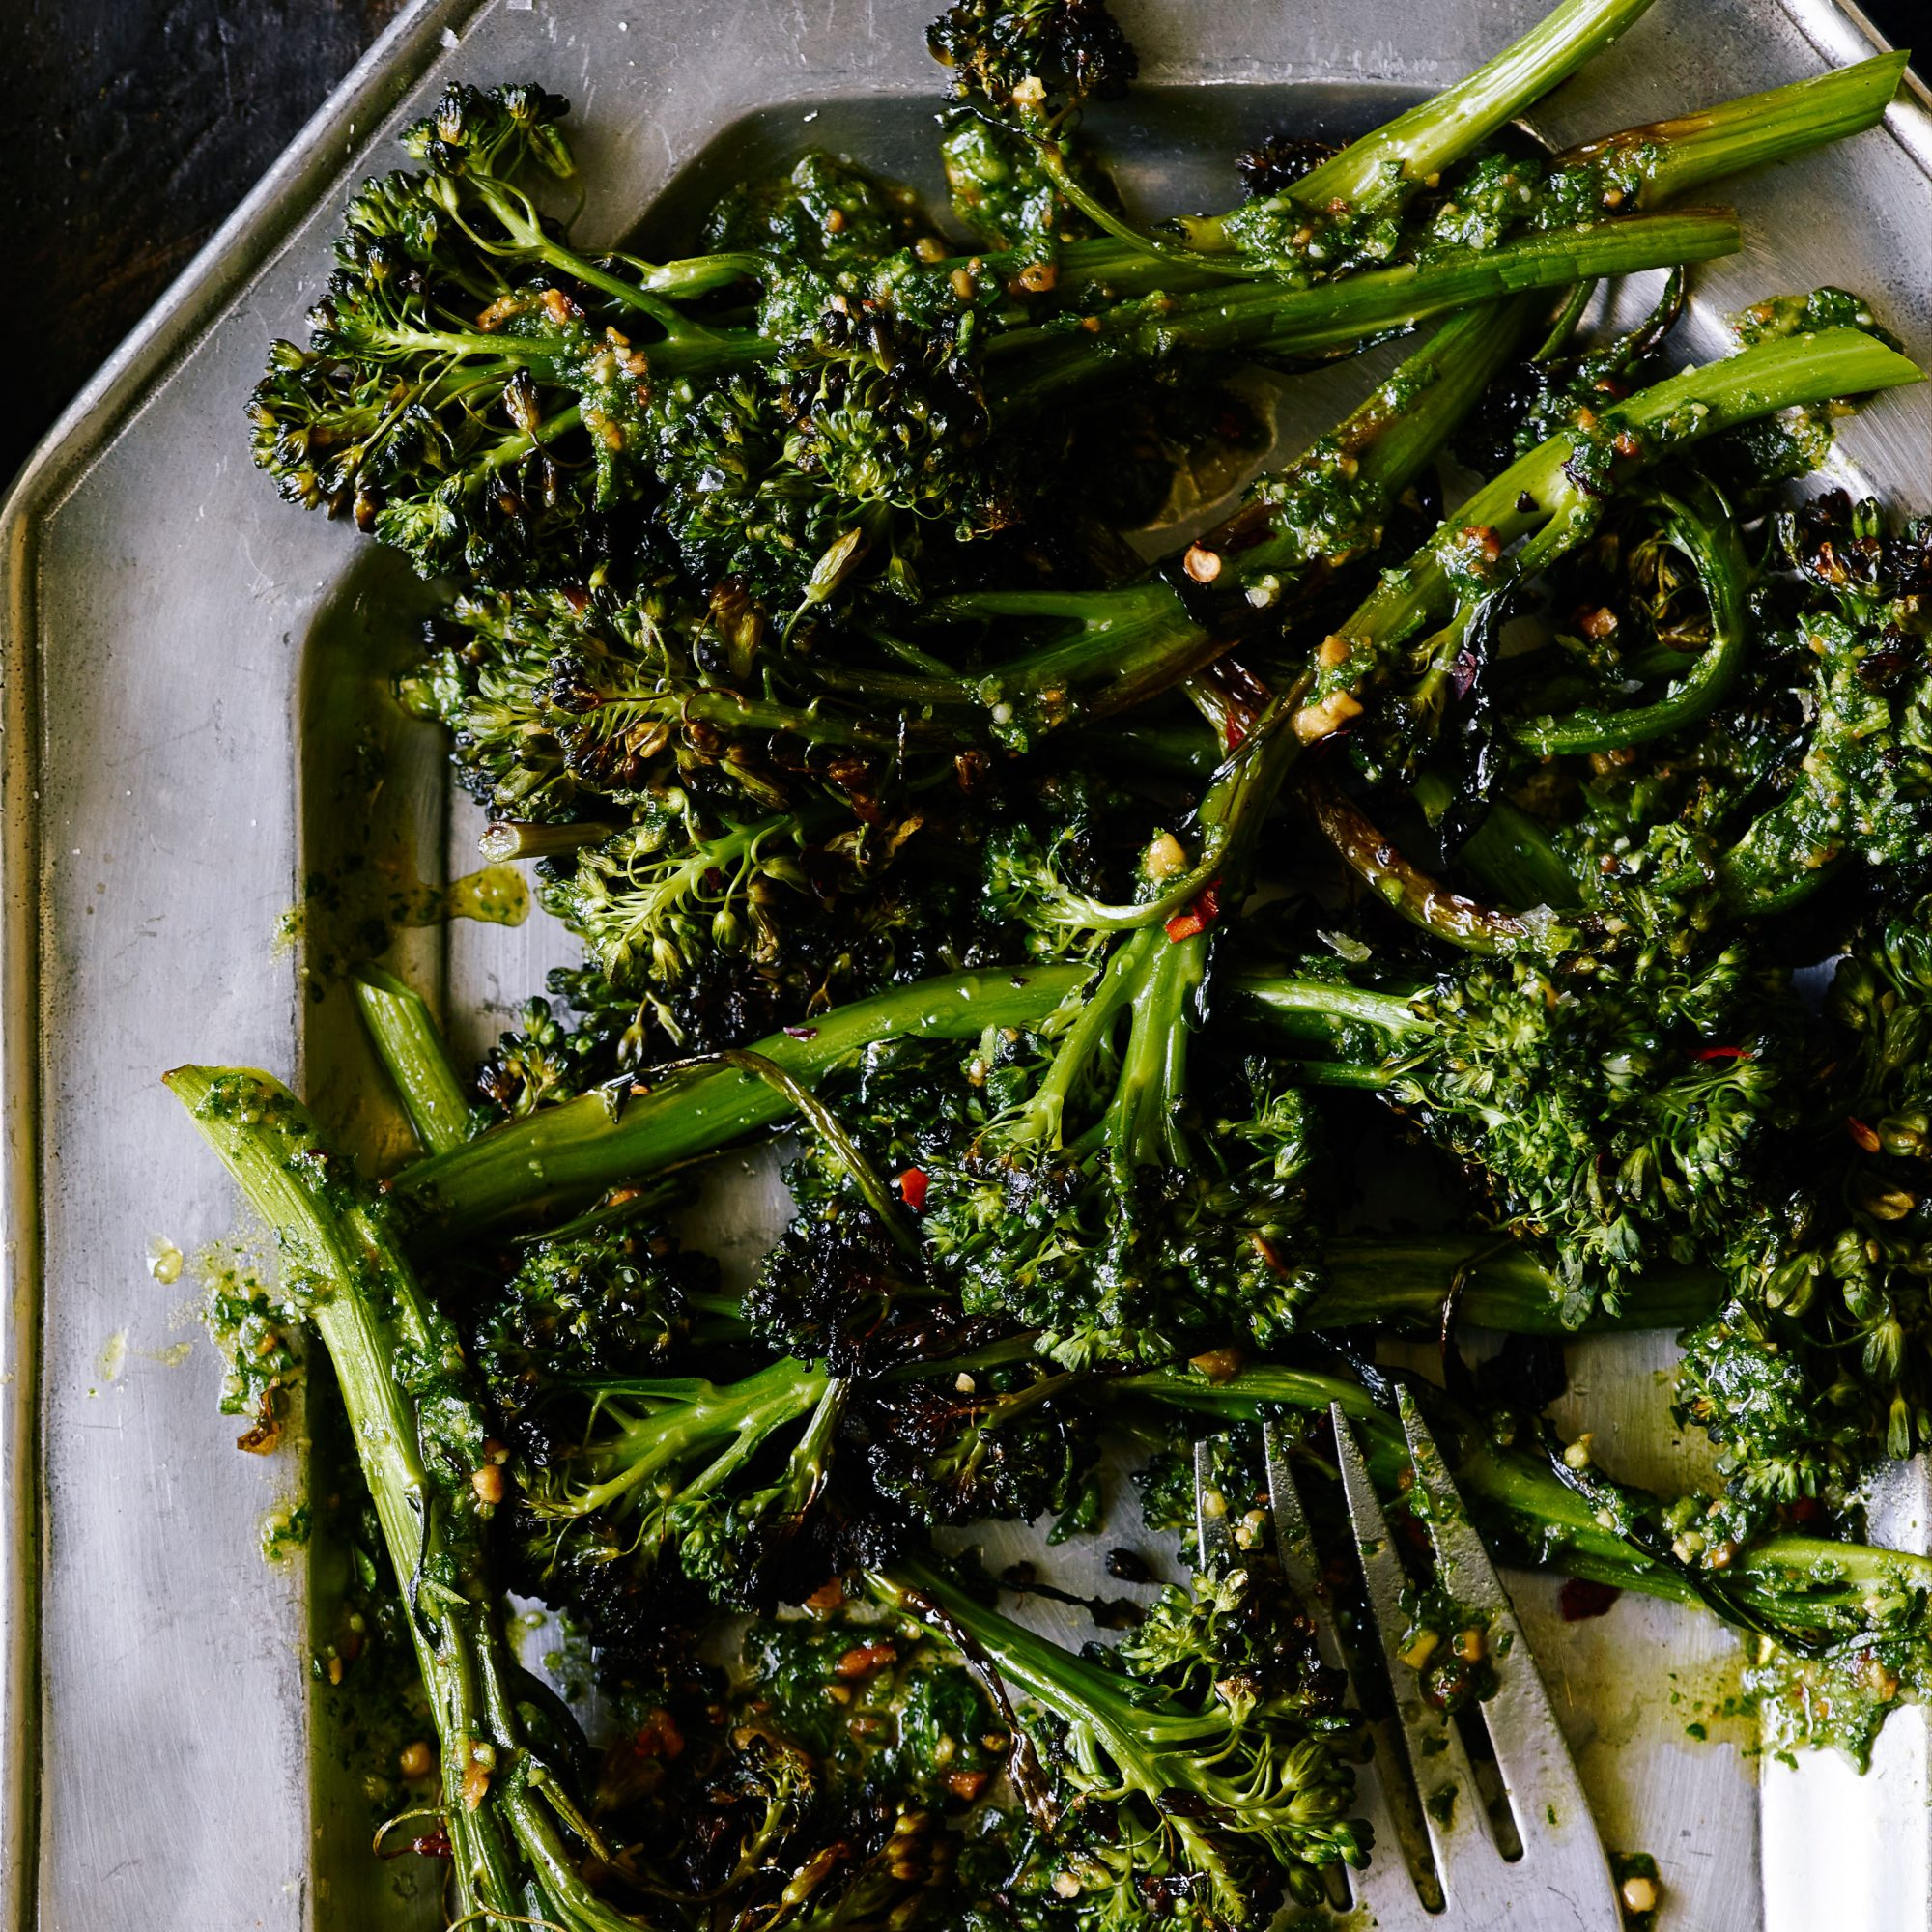 Roasted Broccolini with Almond Parsley Pesto